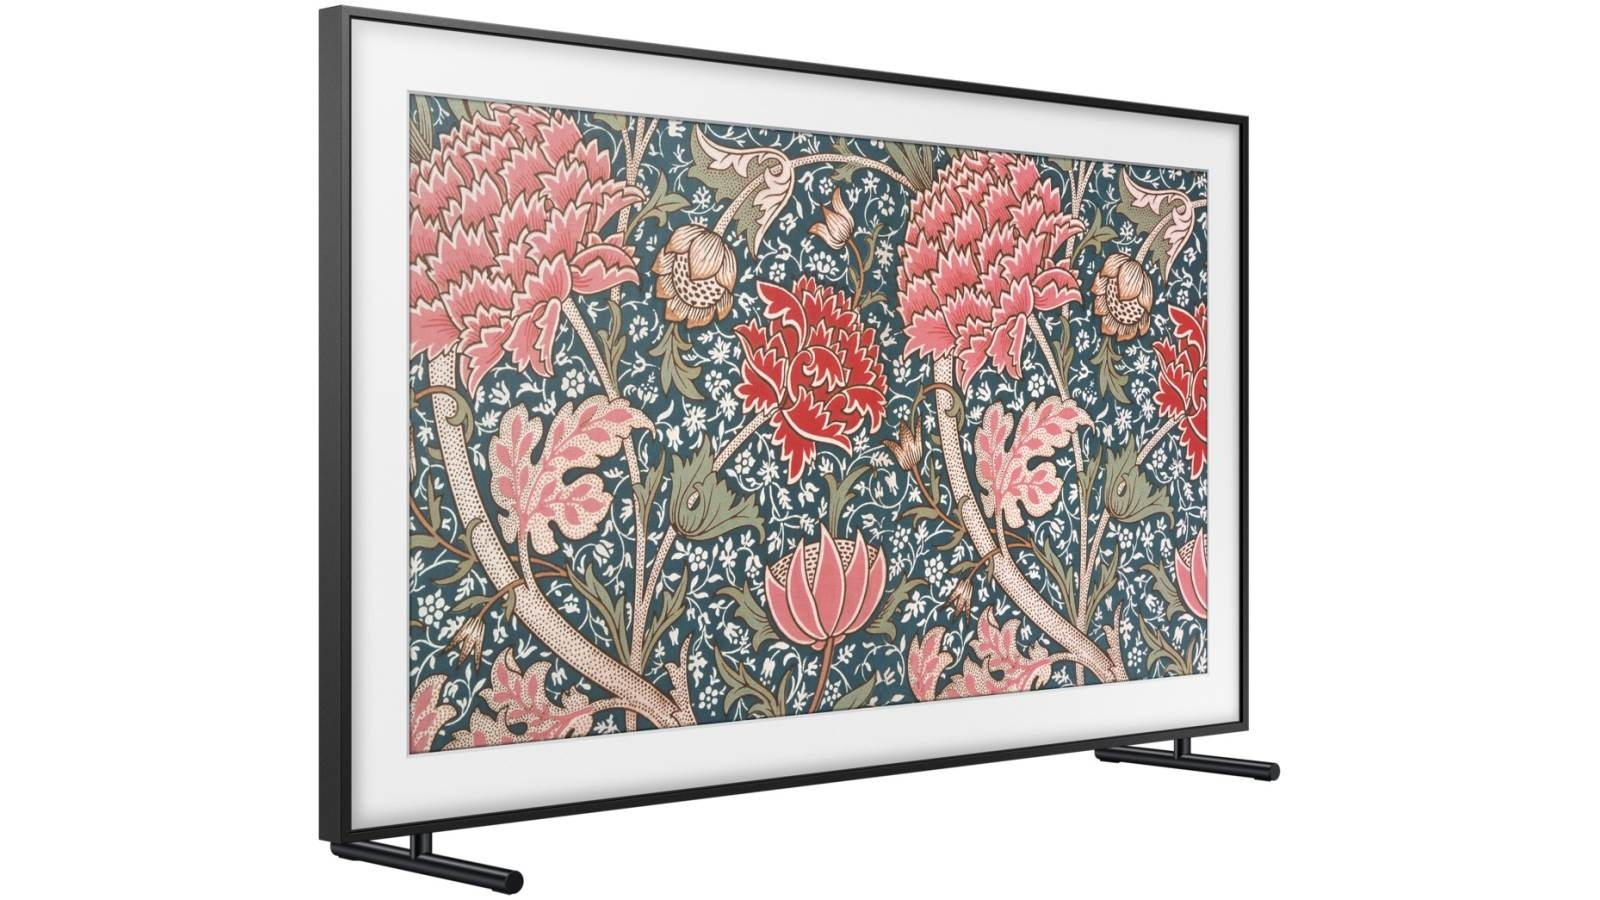 Samsung 55-inch The Frame 4K UHD QLED Smart TV